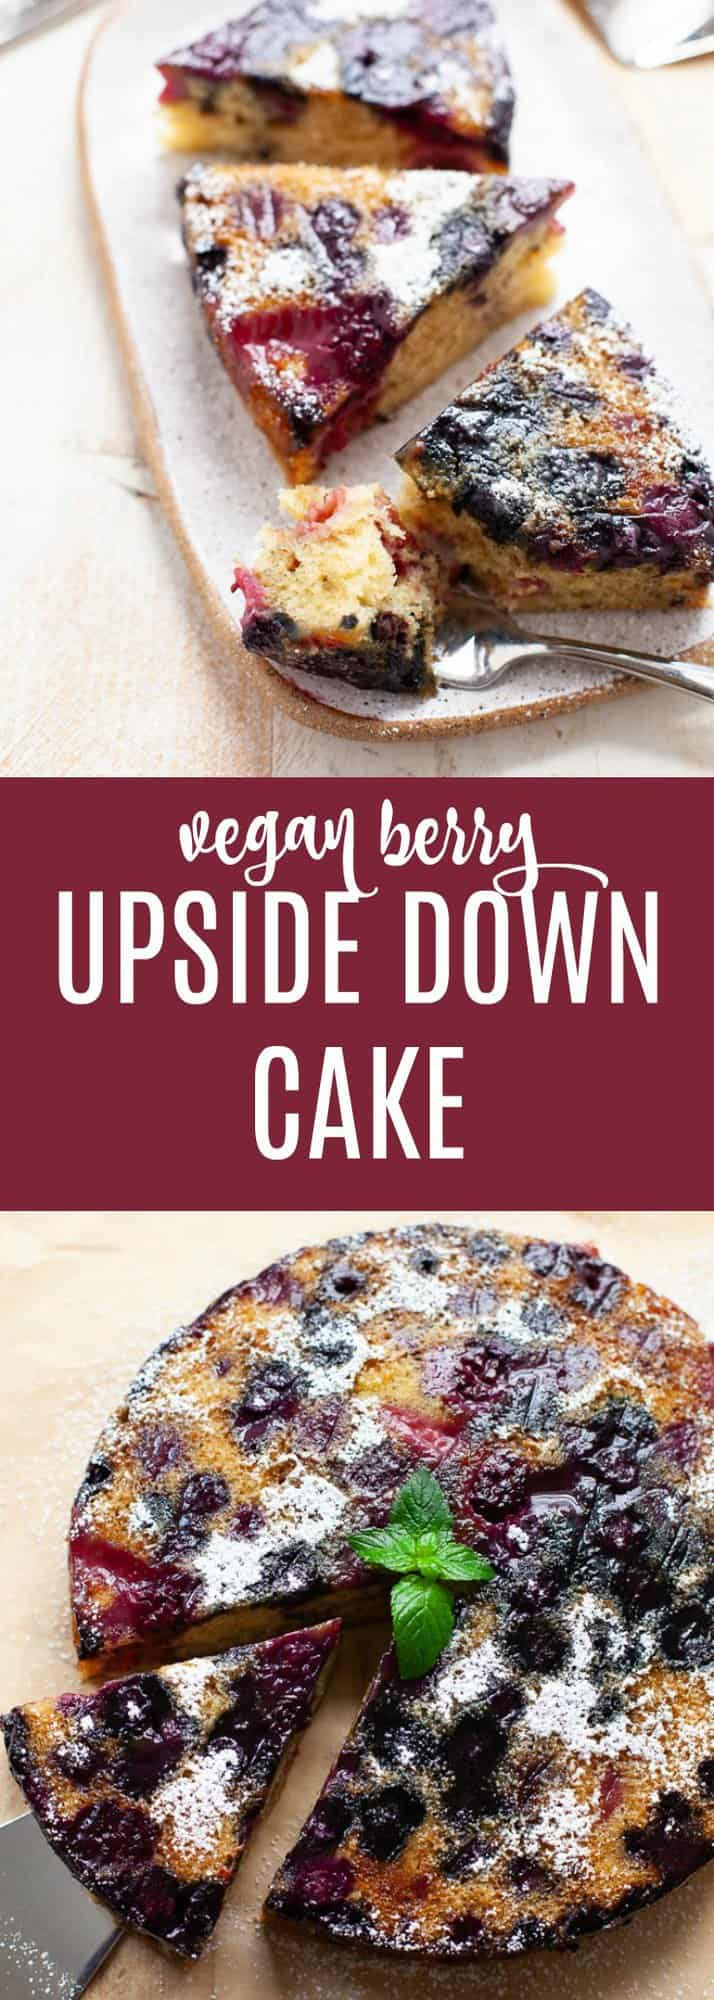 The perfect addition to your end-of-Summer gathering or companion to a cup of afternoon tea, this vegan berry upside down cake is dense, spongy, and combines fresh flavors such as olive oil and mint into a sweet symphony. #vegan